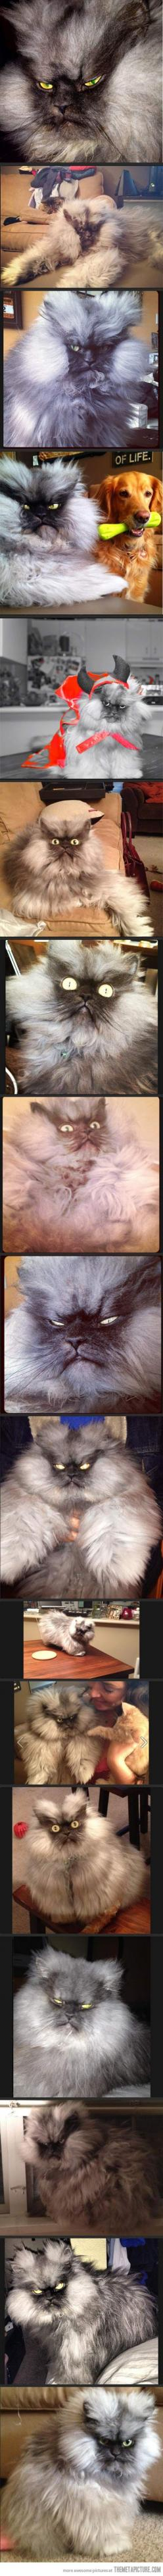 The most glorious angry cat that has ever existed…: Cats, Evil Cat, Animals, Glorious Angry, Second Angry, Angry Cat, Funny, Grumpy Cat